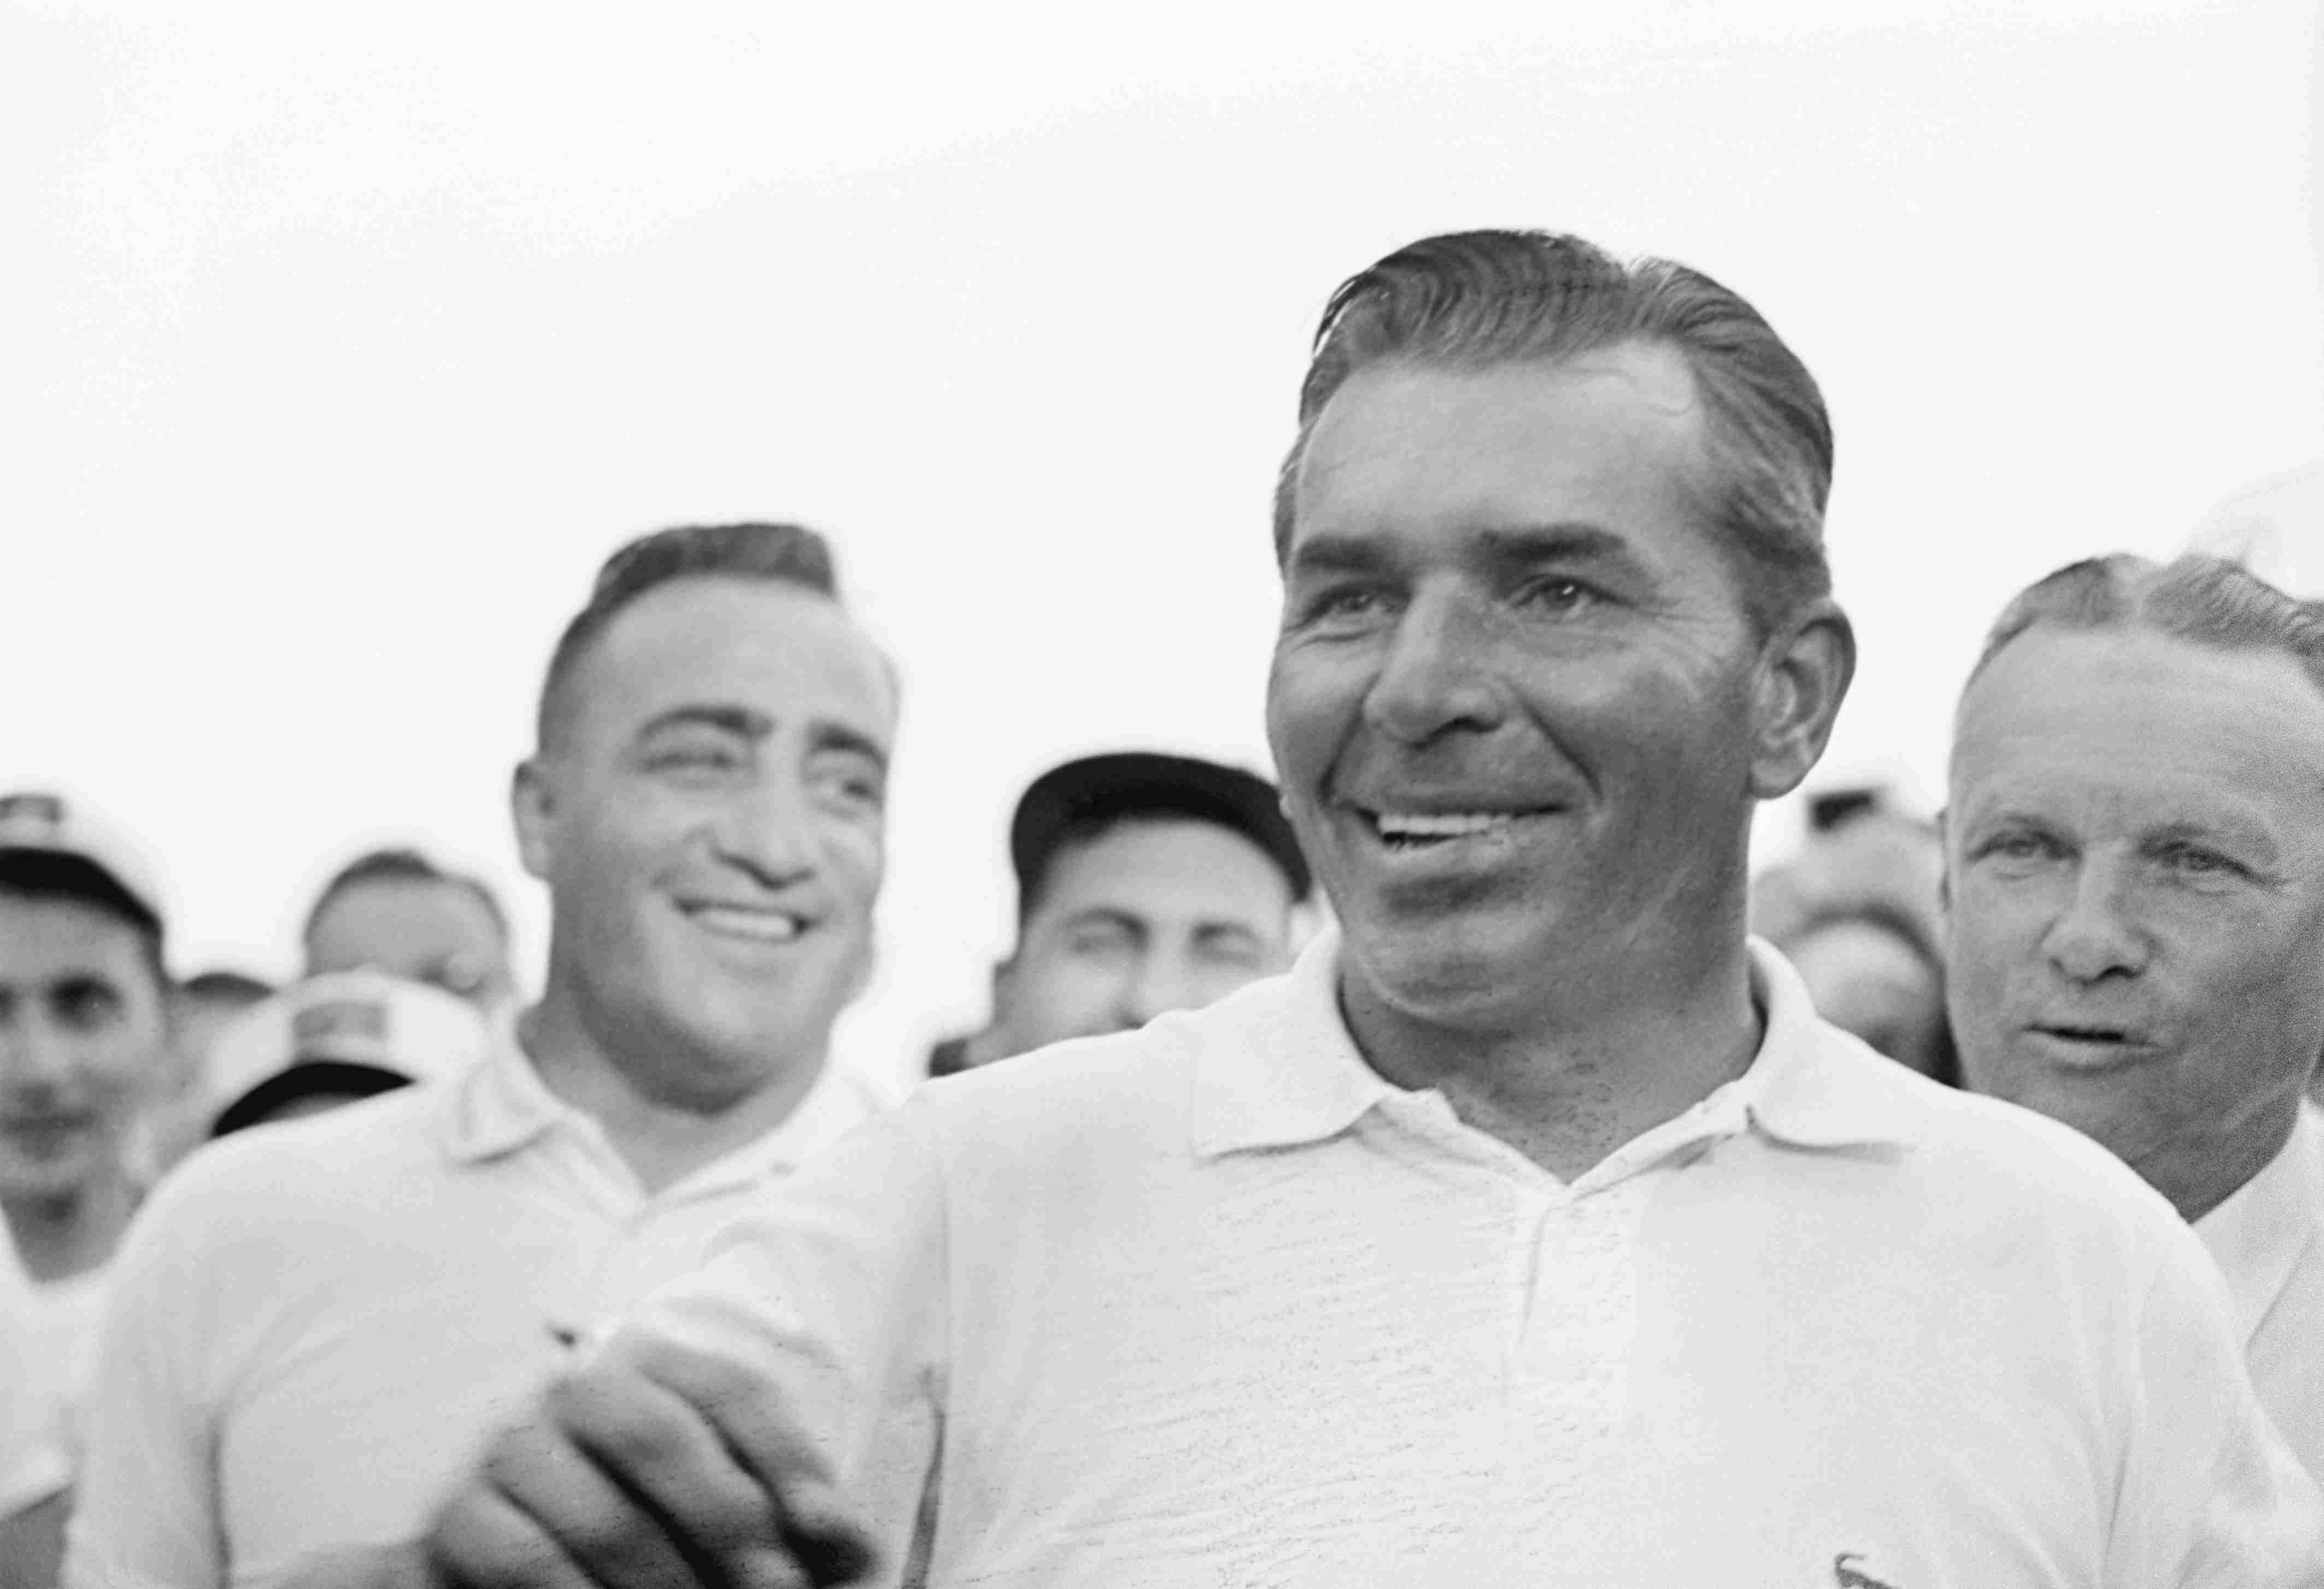 Smiling Julius Boros, after winning the 1963 US Open Golf Championship at Brookline, MA